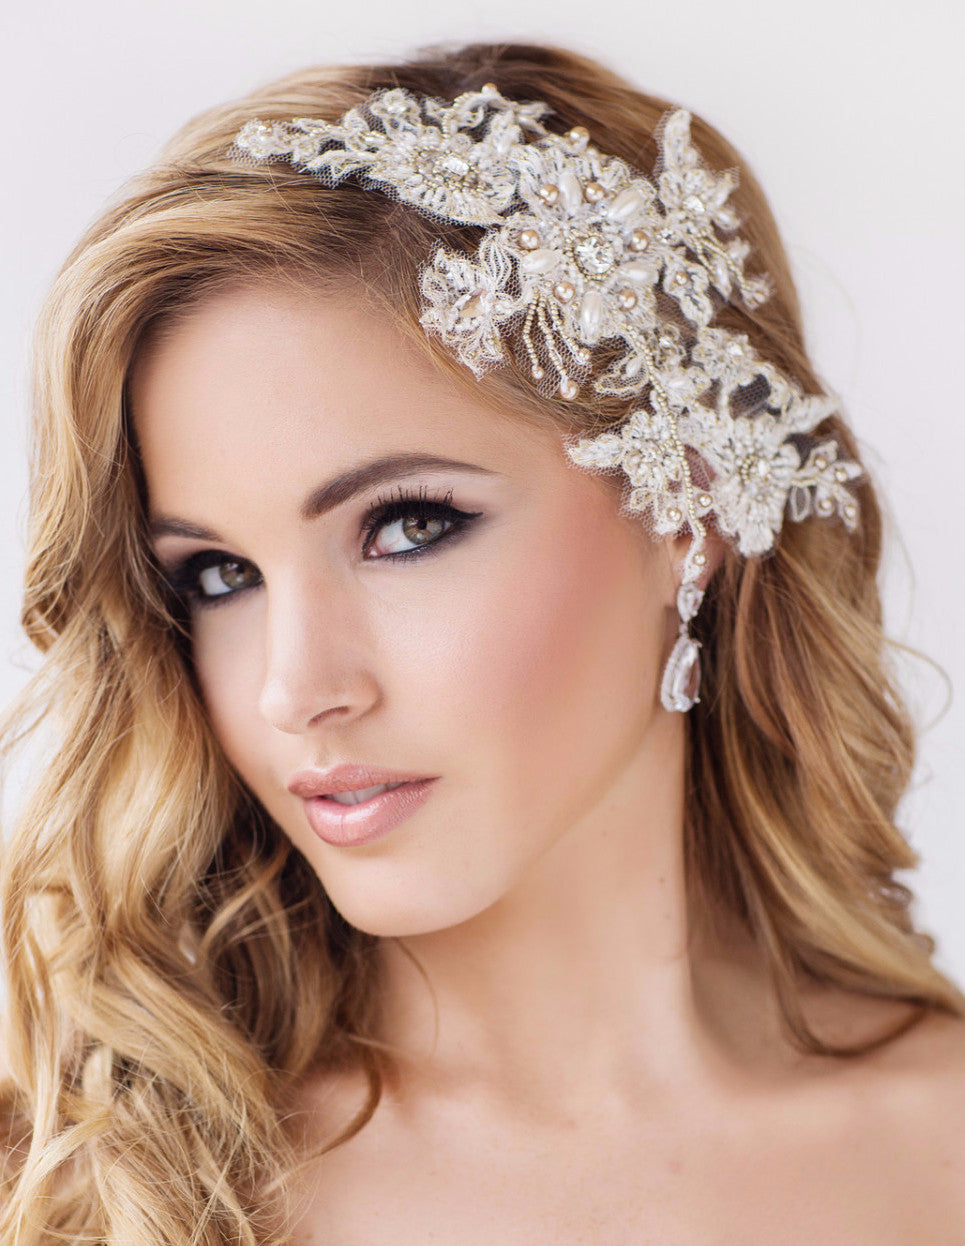 Gretel Lace & Pearl Headpiece - Perle Jewellery & Makeup  - 1